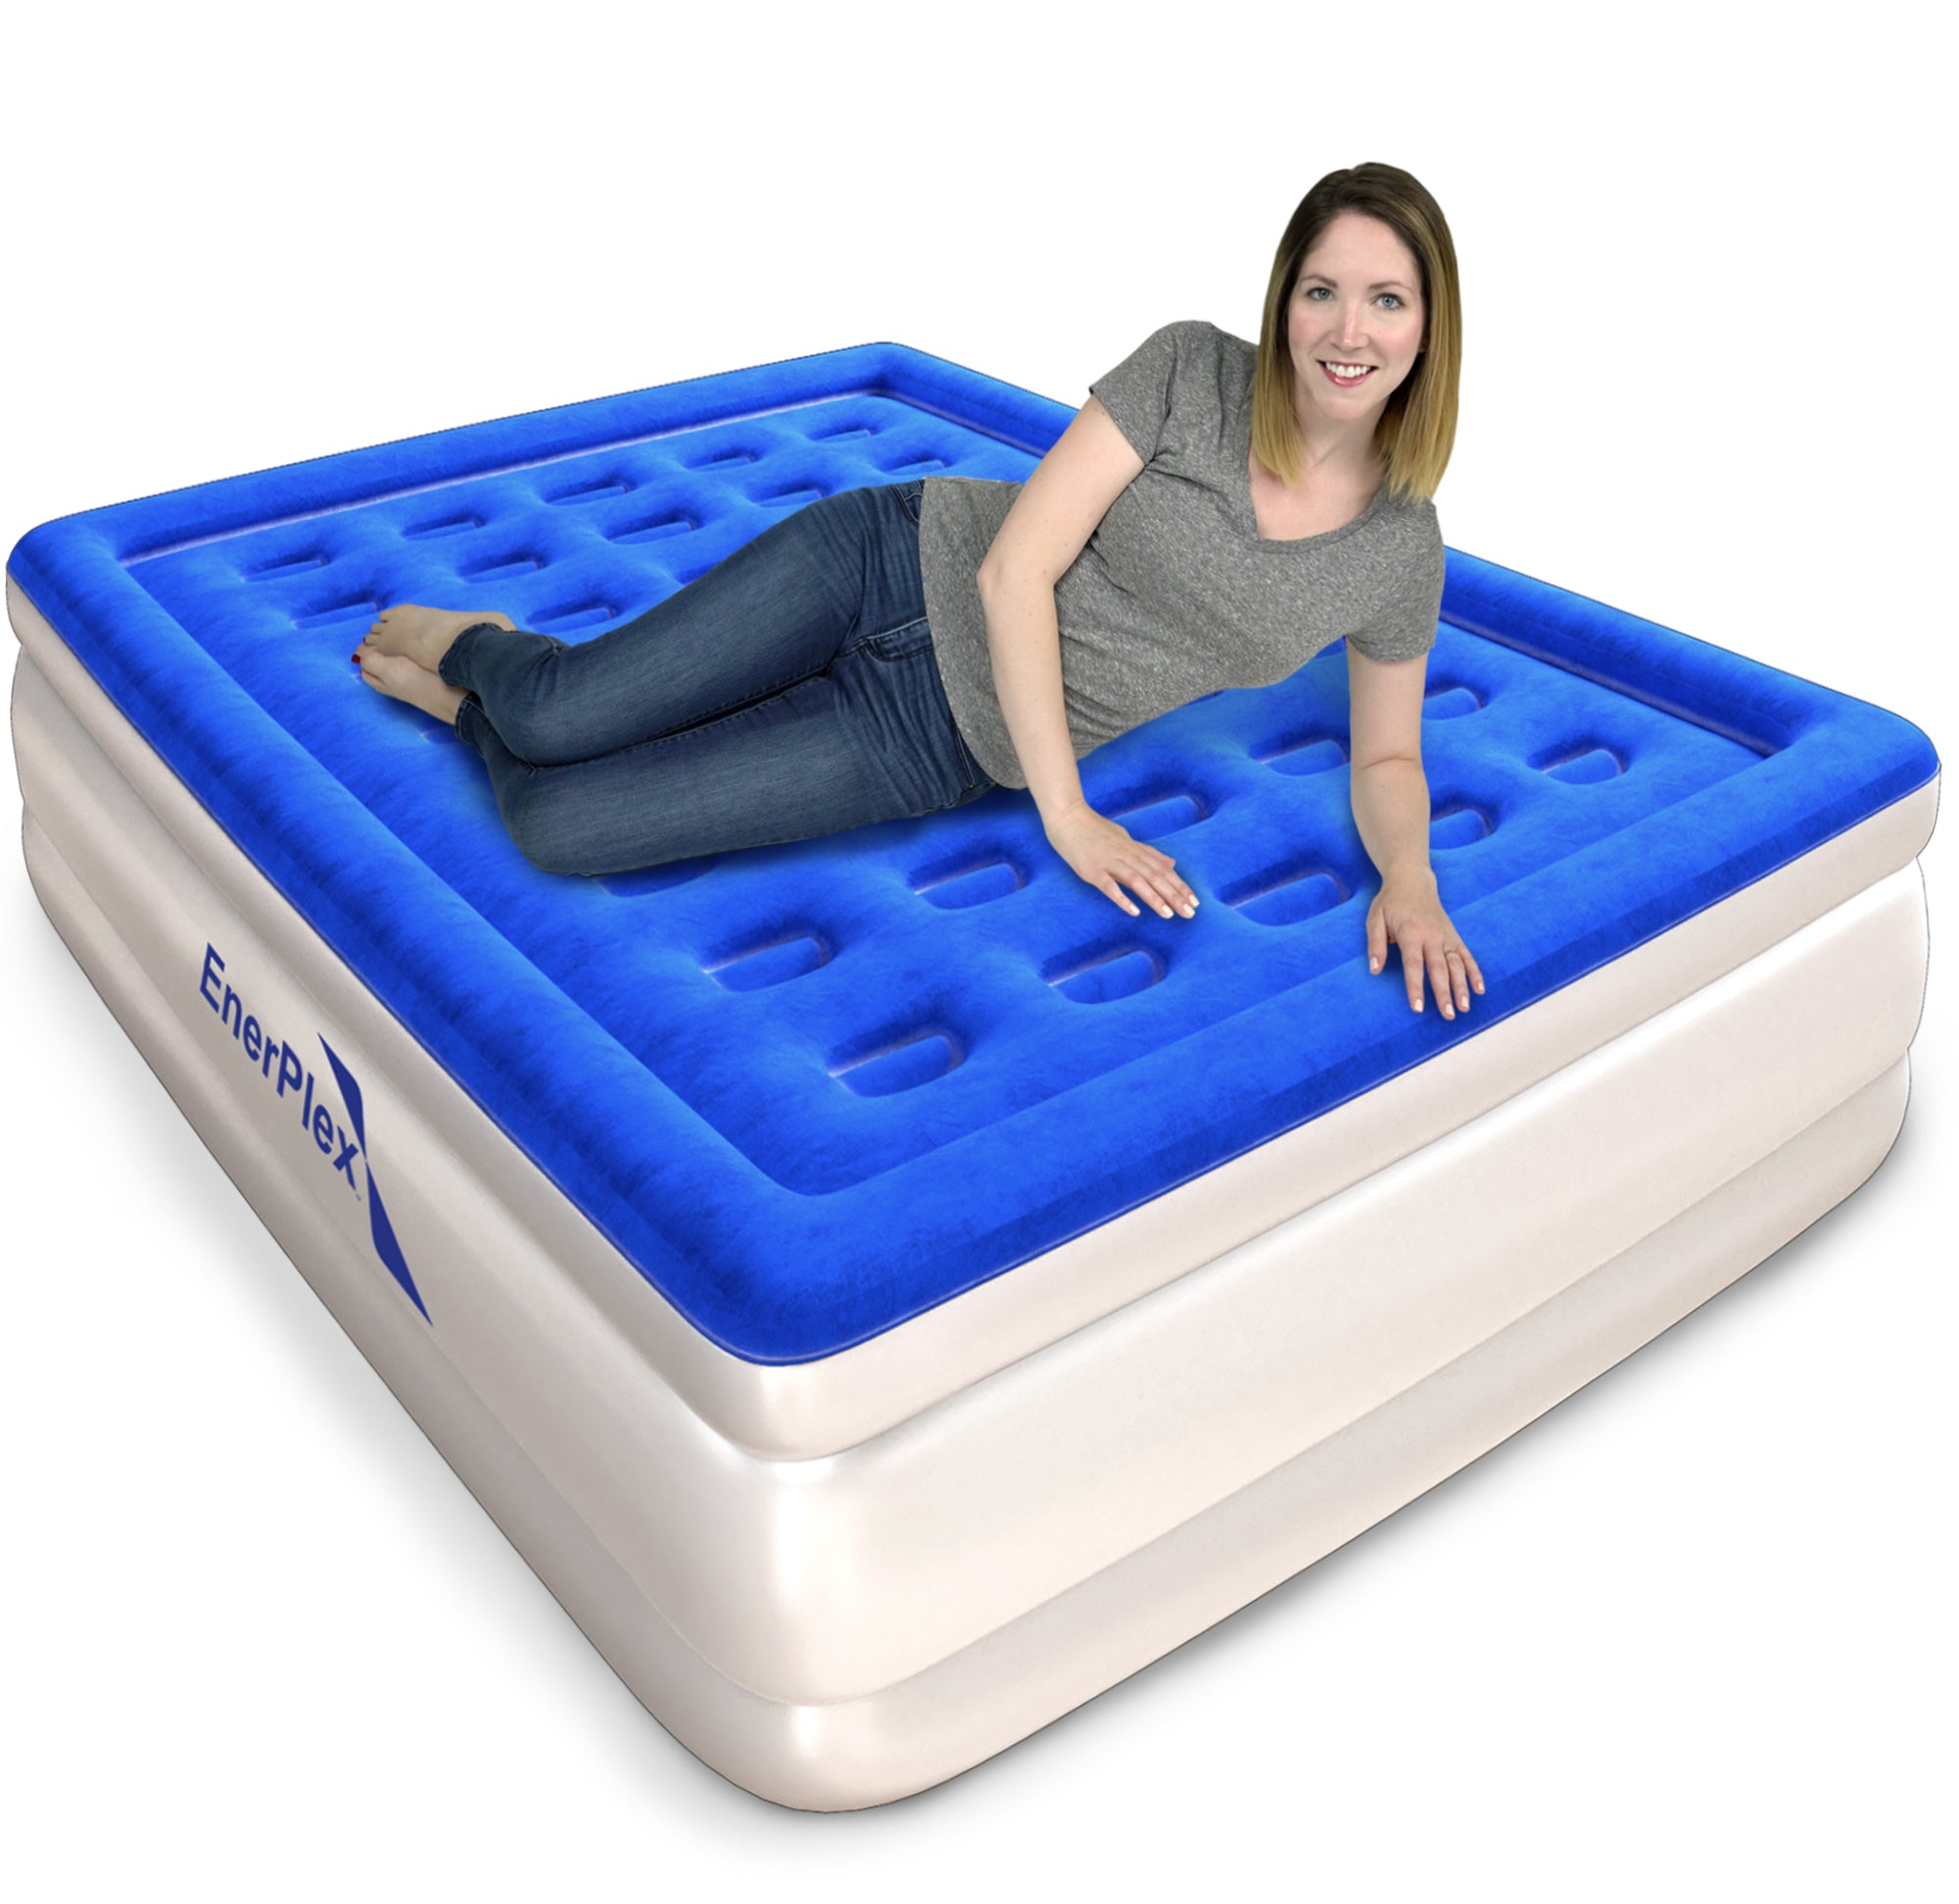 "16"" High Queen Air Mattress with Built-in Pump"